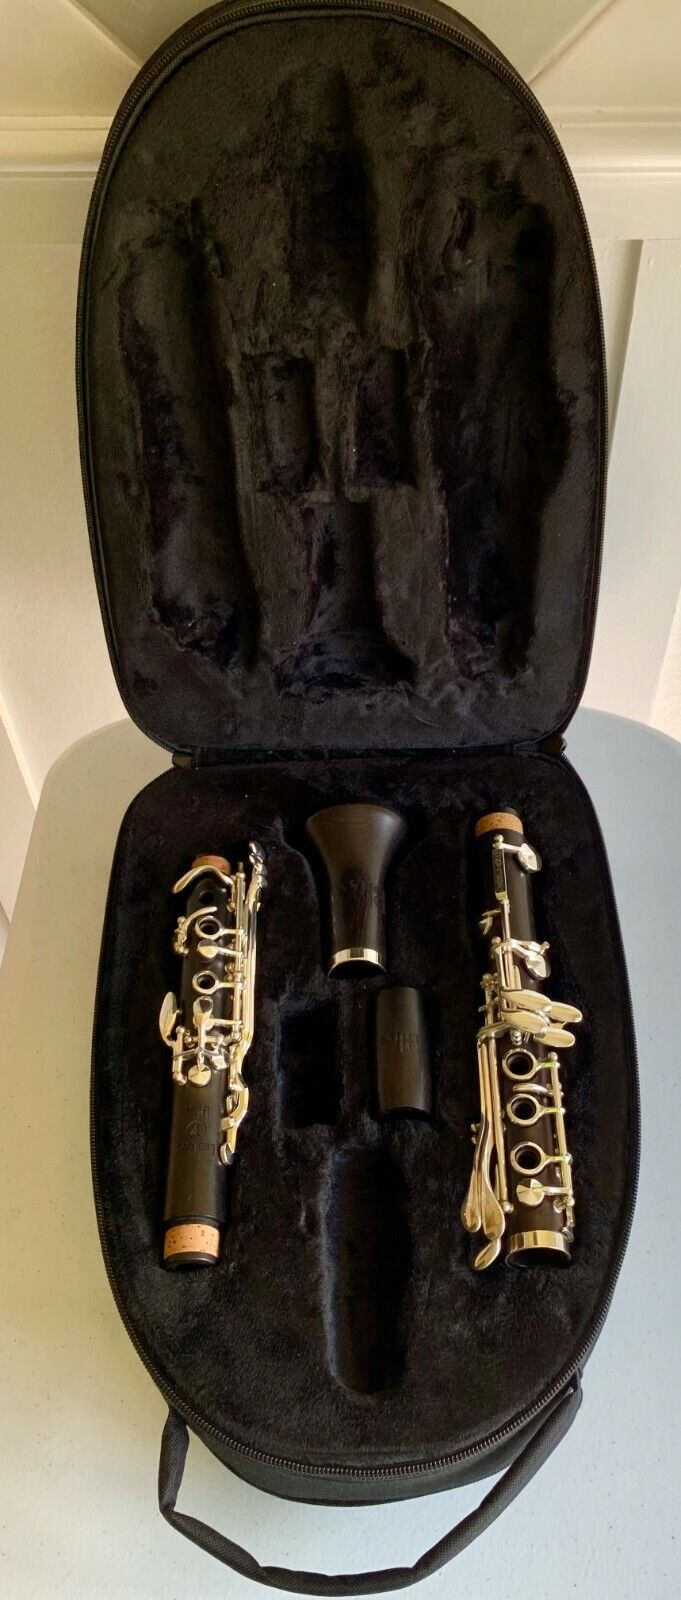 Bb Clarinet Leblanc Bliss Wood Silver Keys With Backpack Case - $325.00